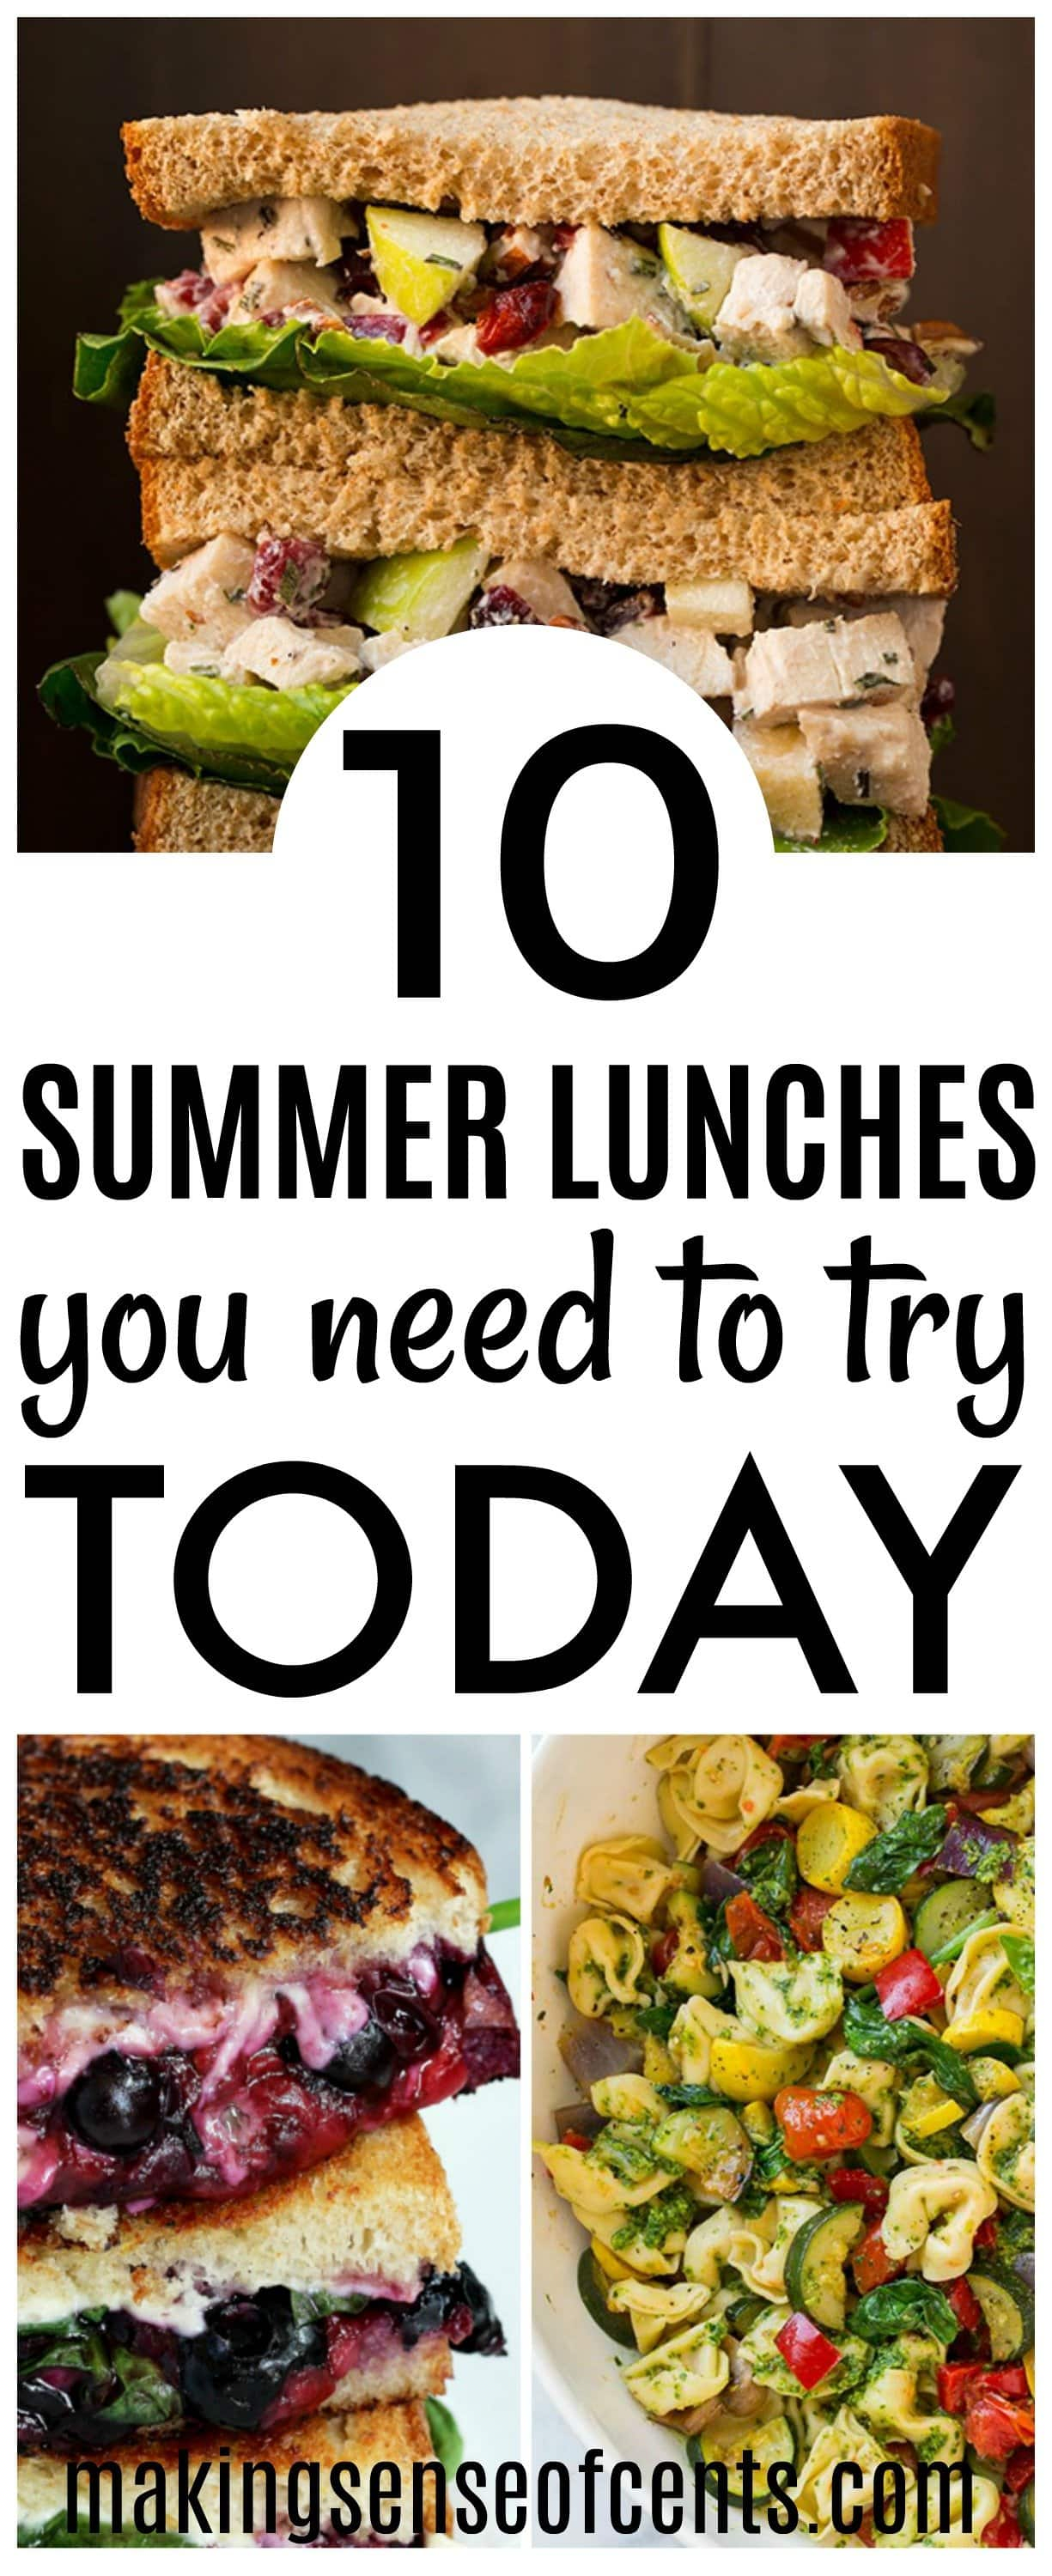 10 Summer Lunch Ideas You Need To Try Today #summerlunchideas #summermeals